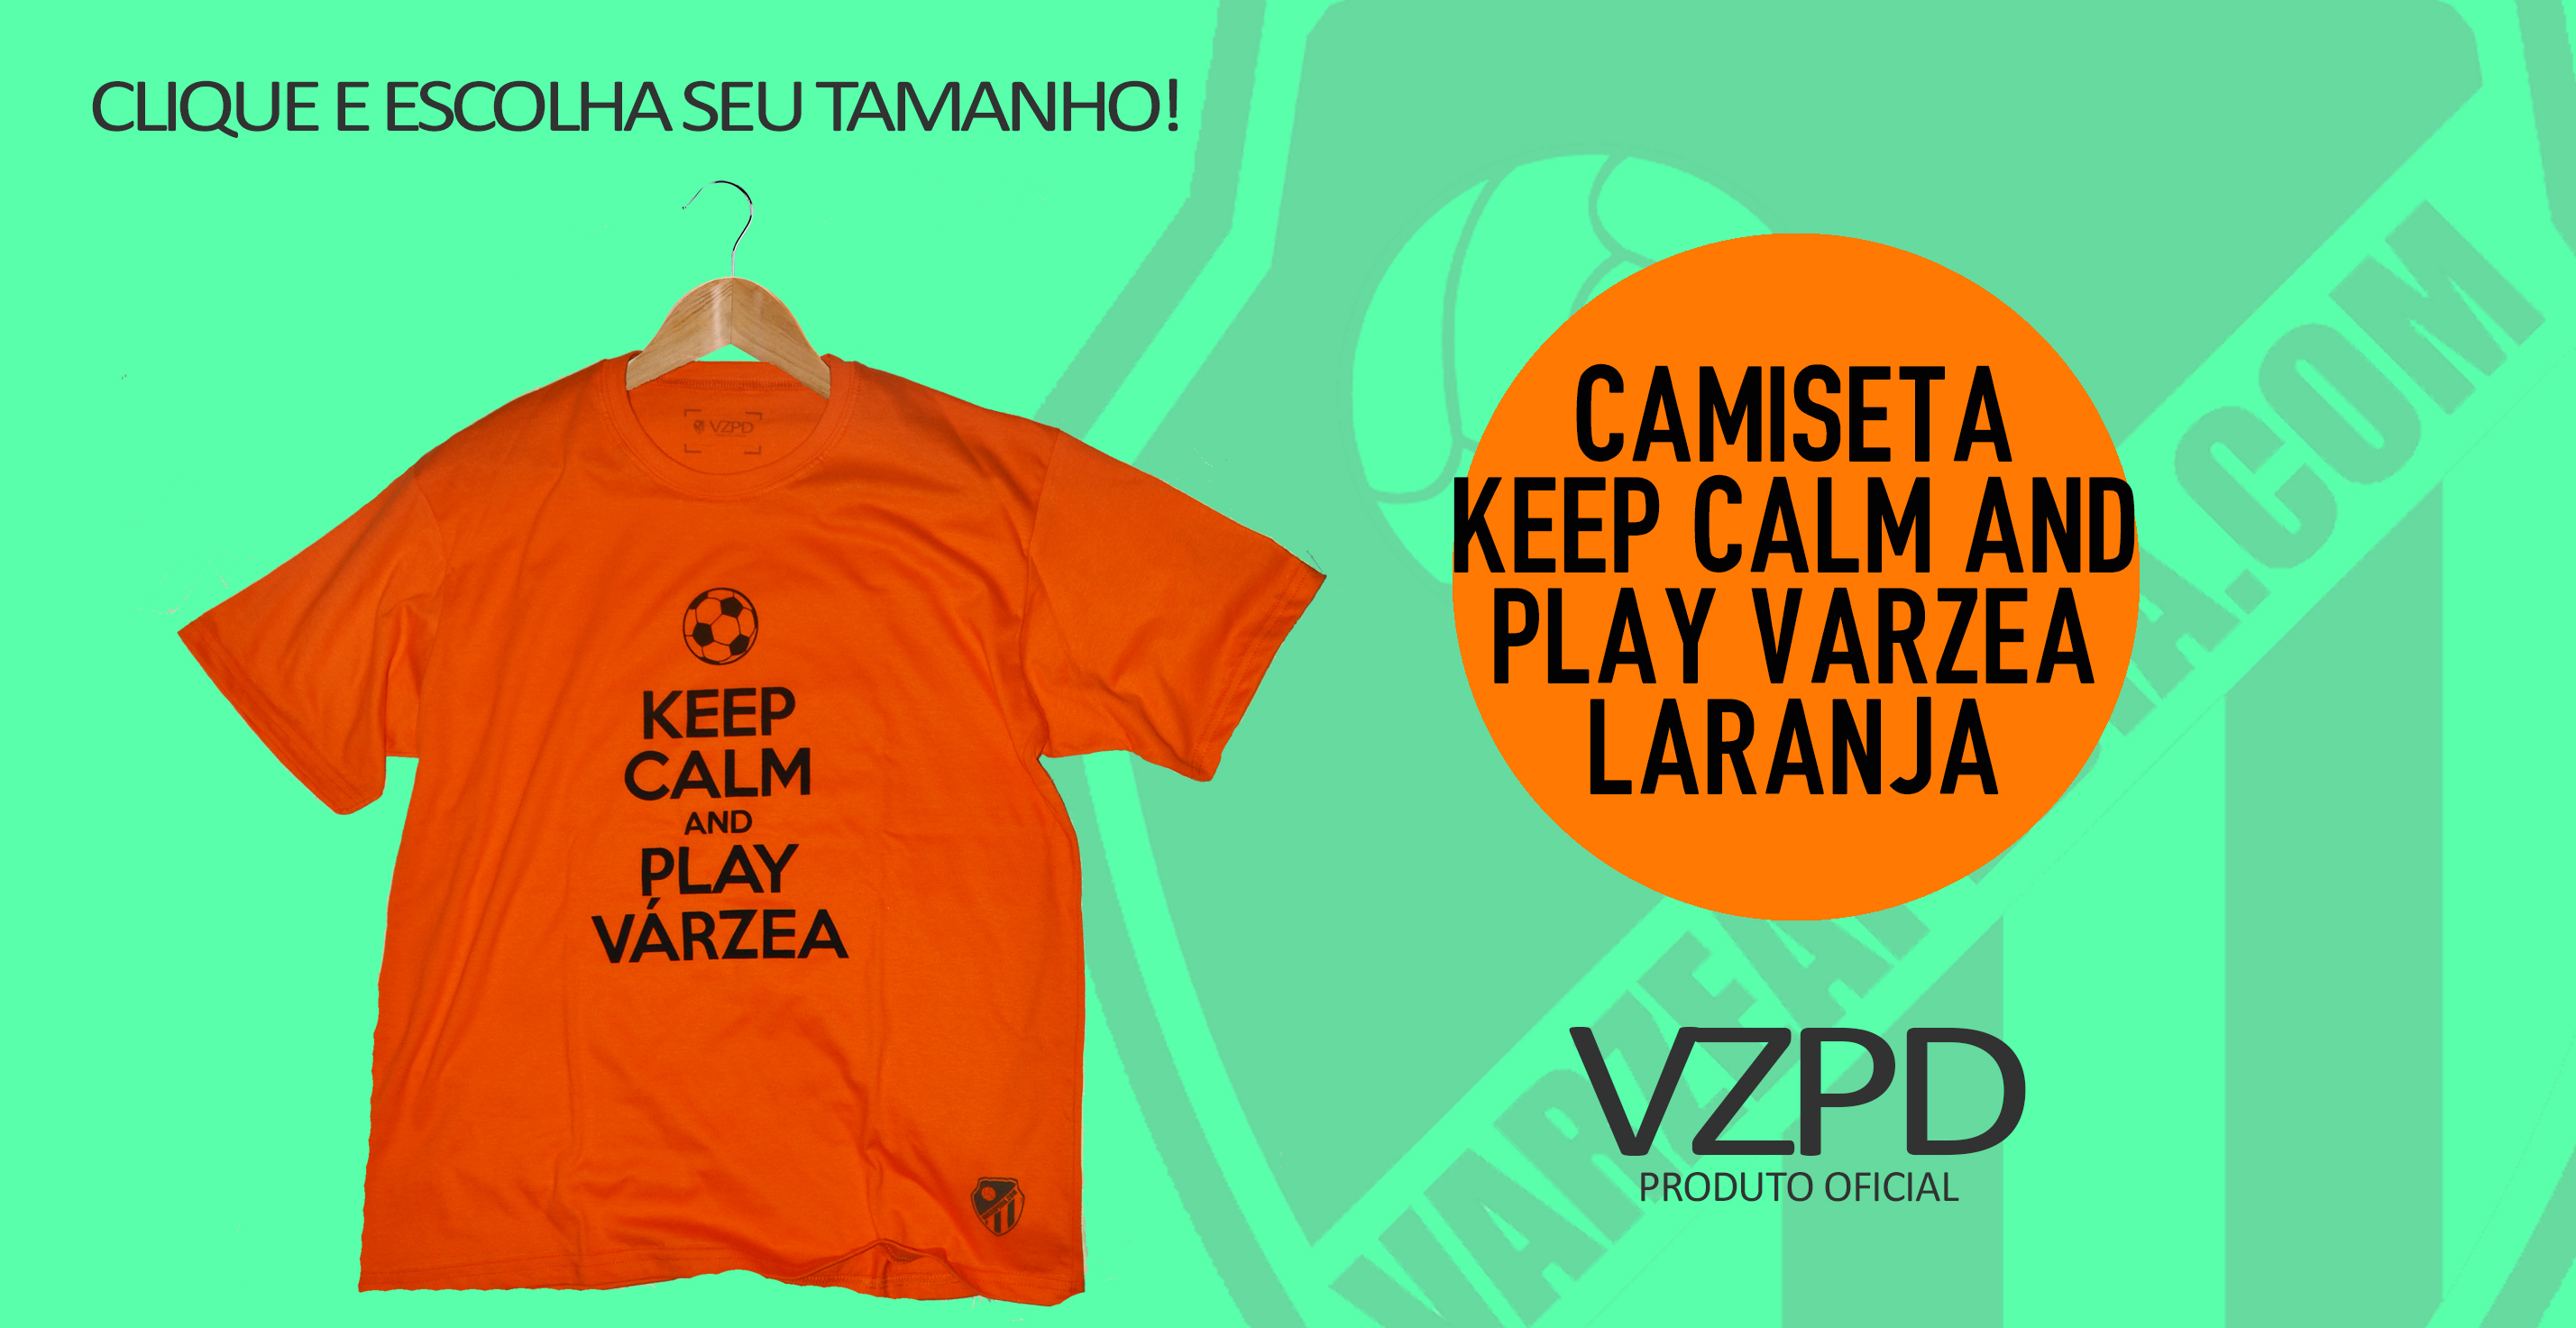 Camiseta keep calm and play varzea laranja